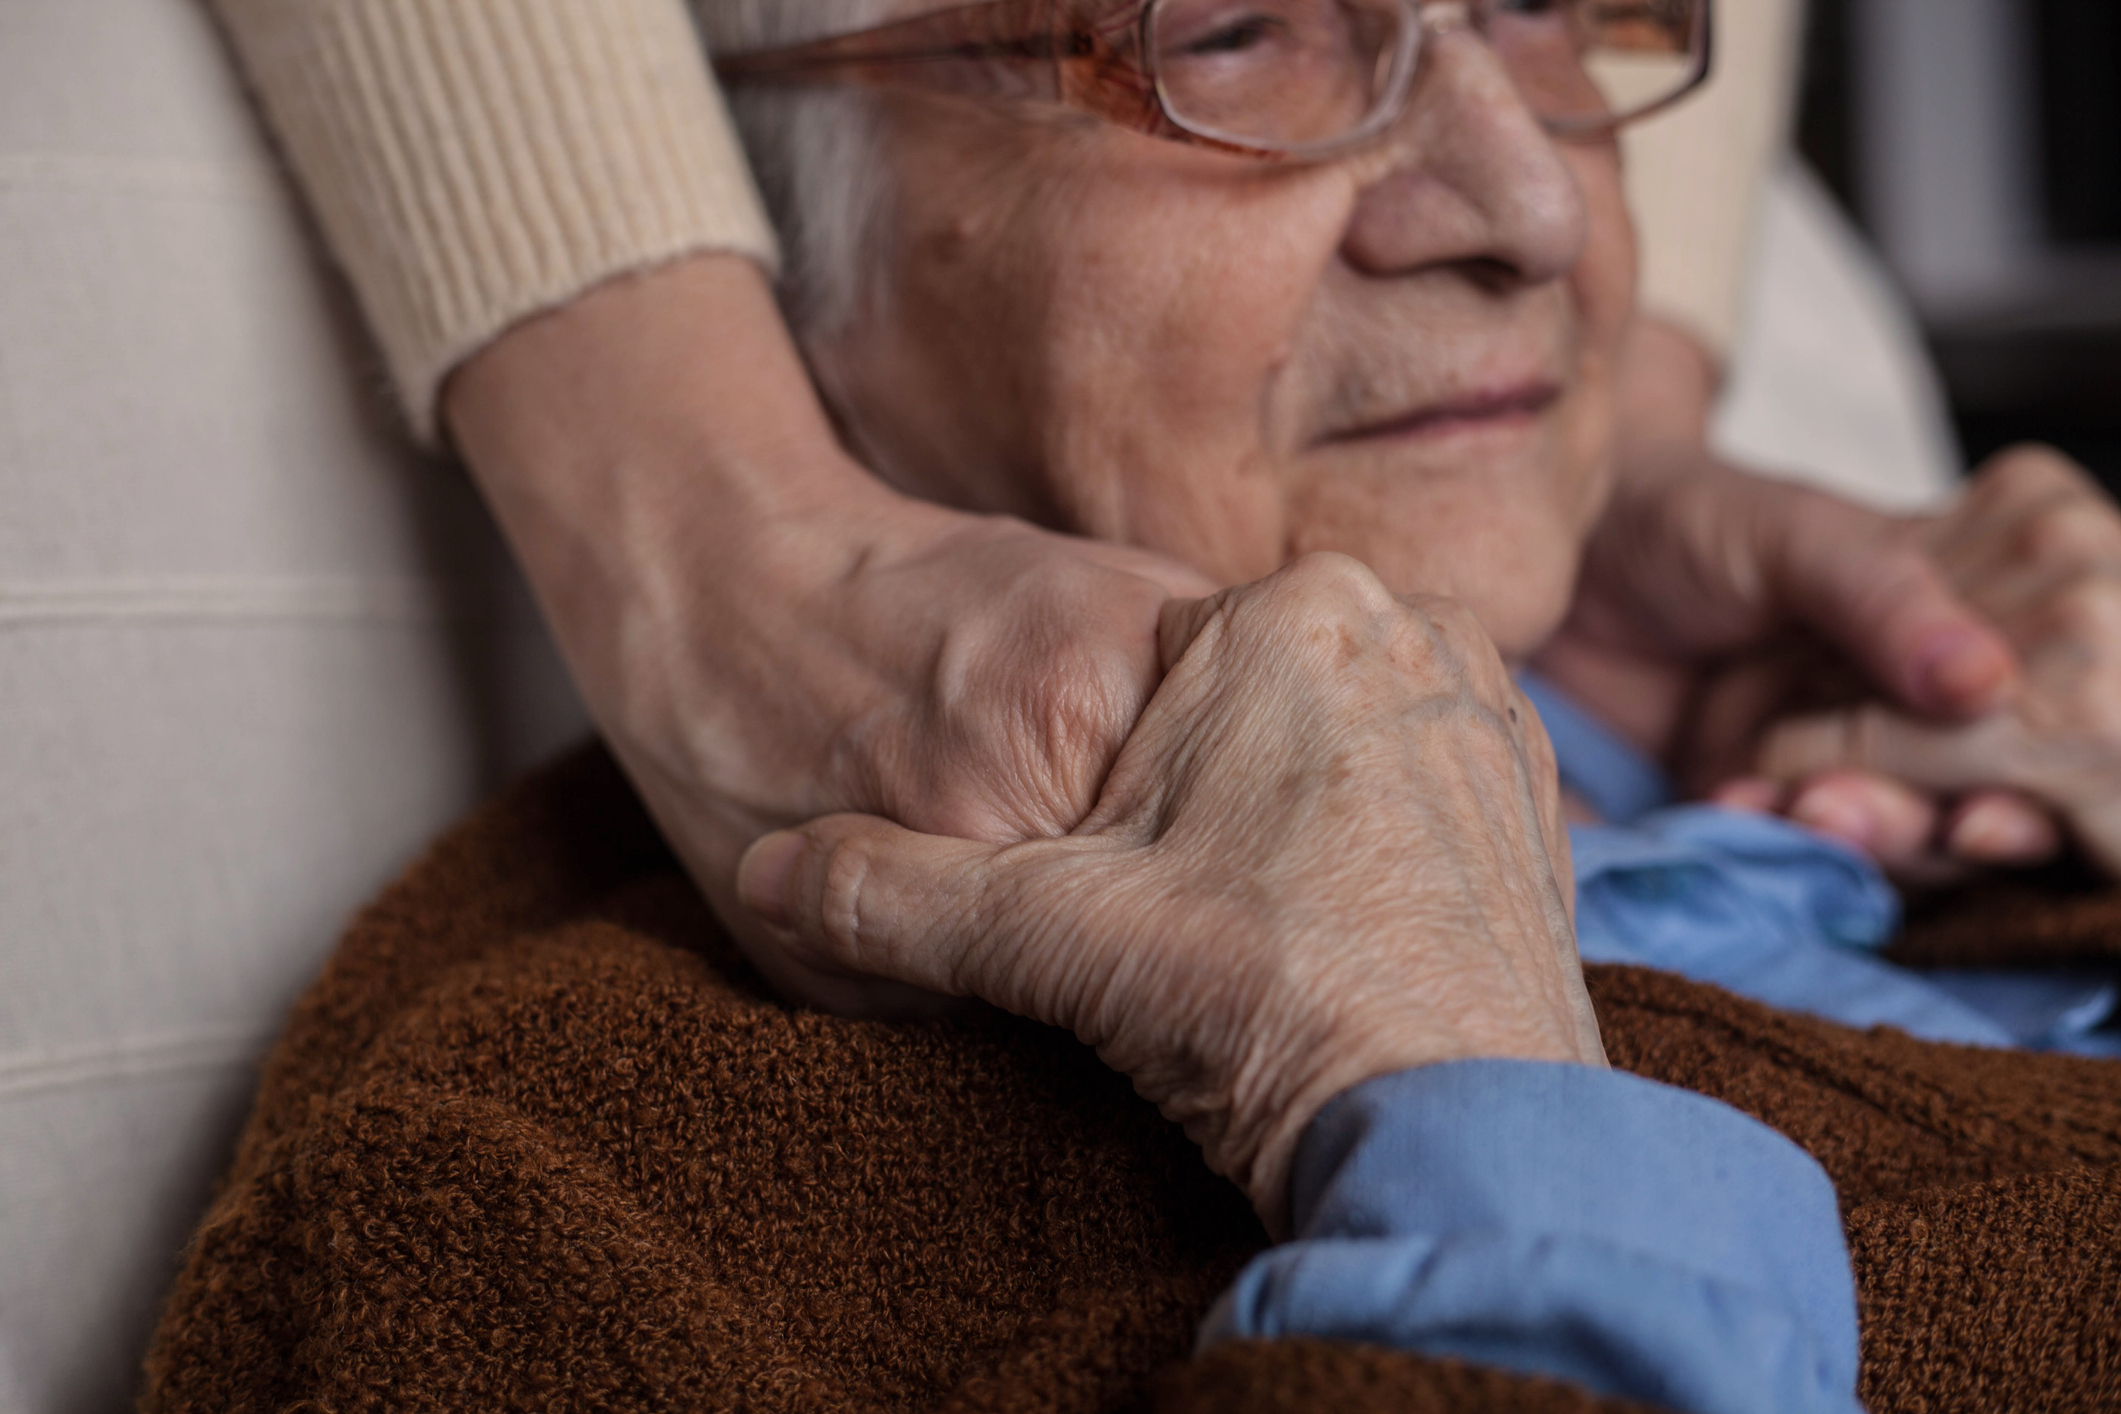 Learn about late stage dementia caregiving from Abby Senior Care.